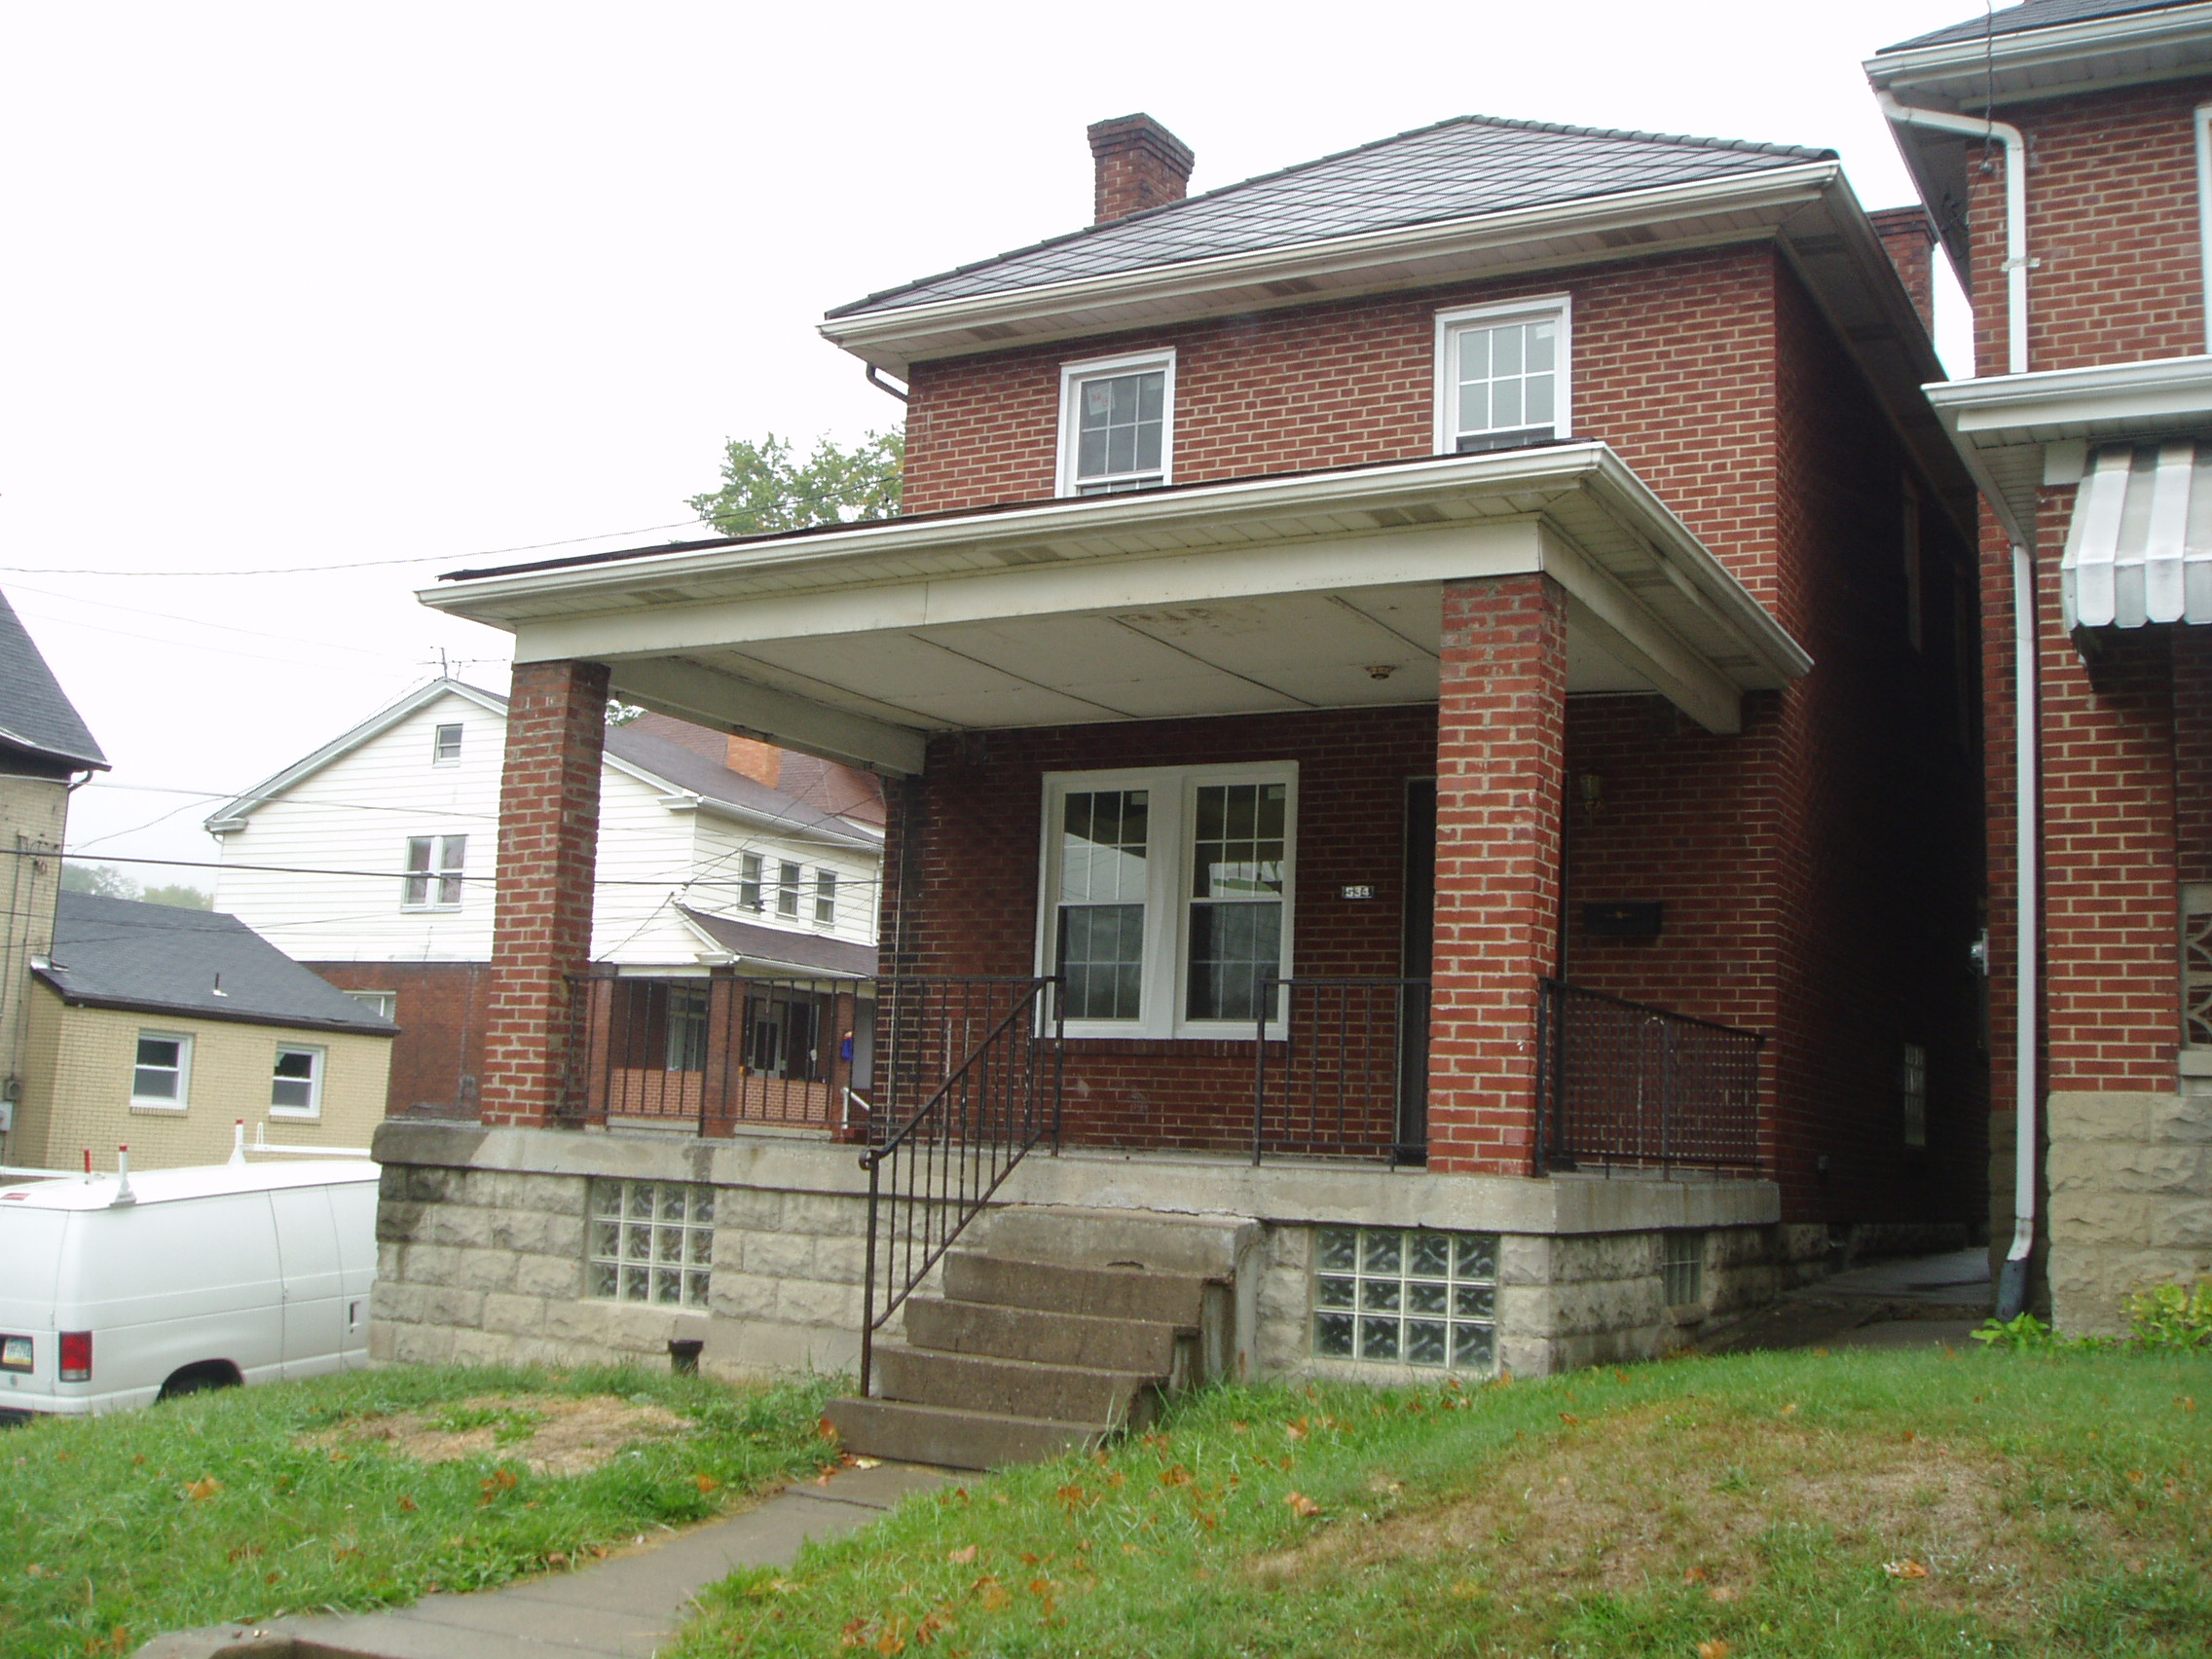 534 Overbrook Blvd  Pittsburgh PA 15210   3 bedrooms  2 baths and 1 1 2  bath  1 car integral garage  finished basement  Rent  850 00 Sale price   84 900 00. We buy homes  Quick Cash  Rent to own